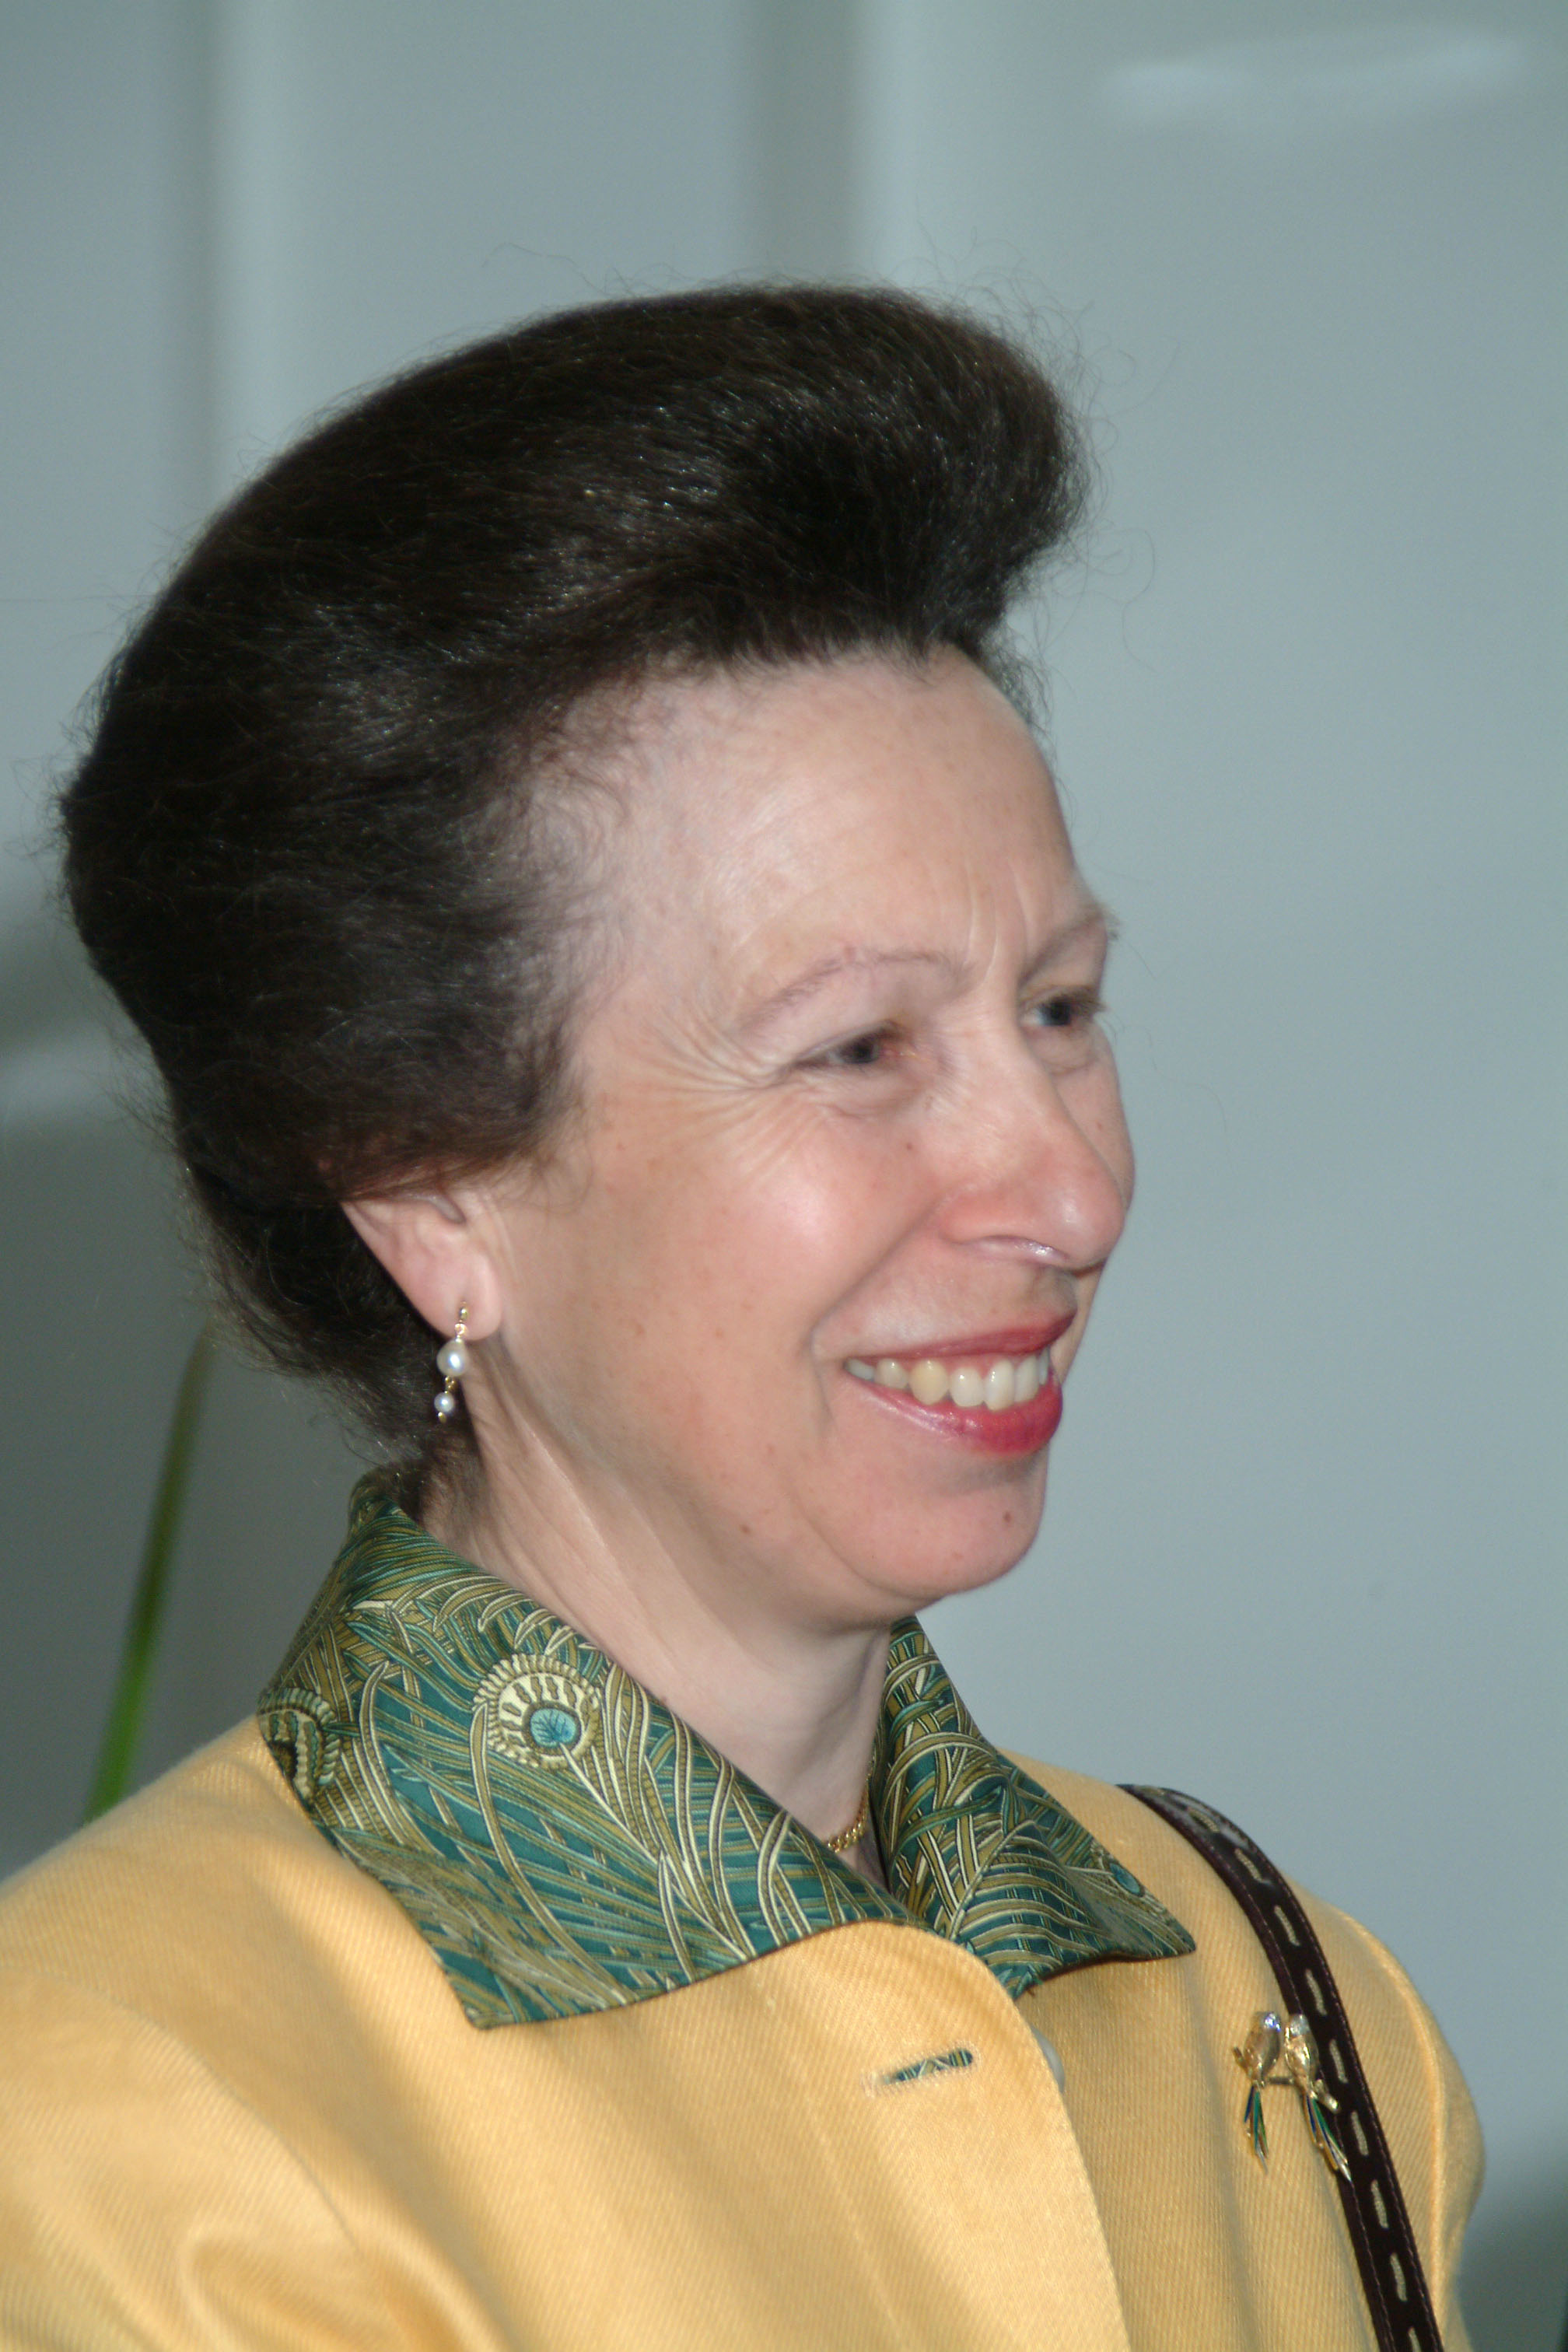 HRH The Princess Royal on her visit to Harper Adams in 2004